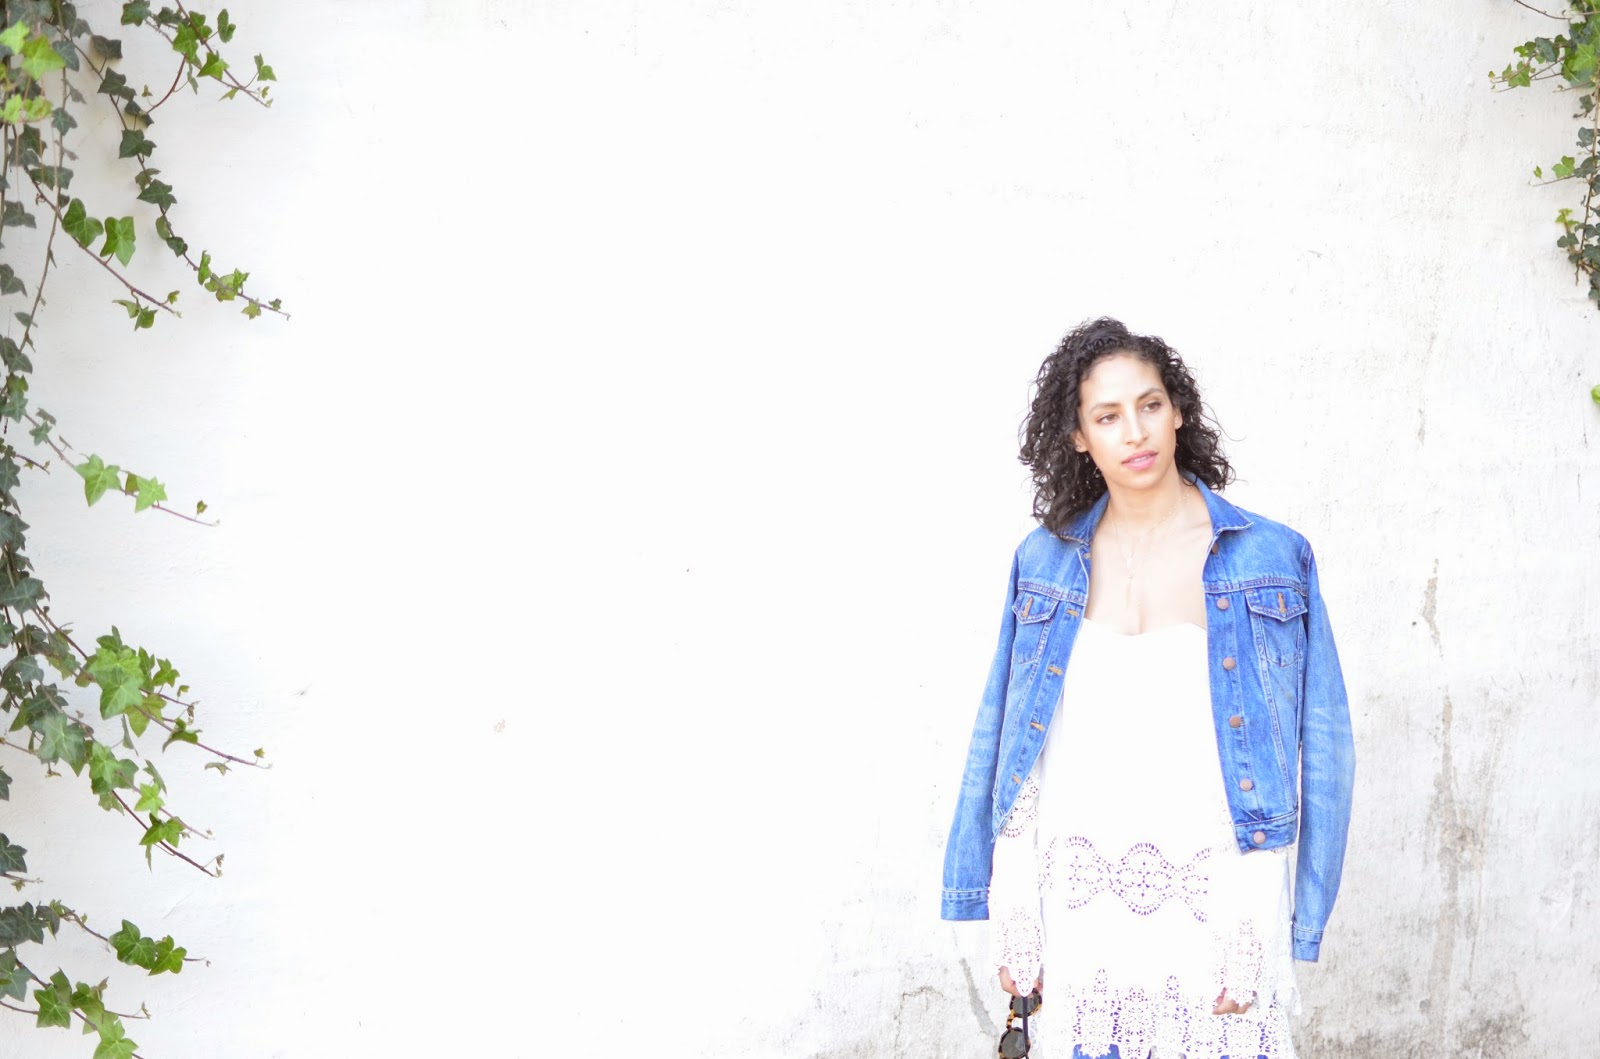 stone cold fox marrakech dress, stone cold fox, revolve clothing, short curly hair,SF street style, gap denim jacket